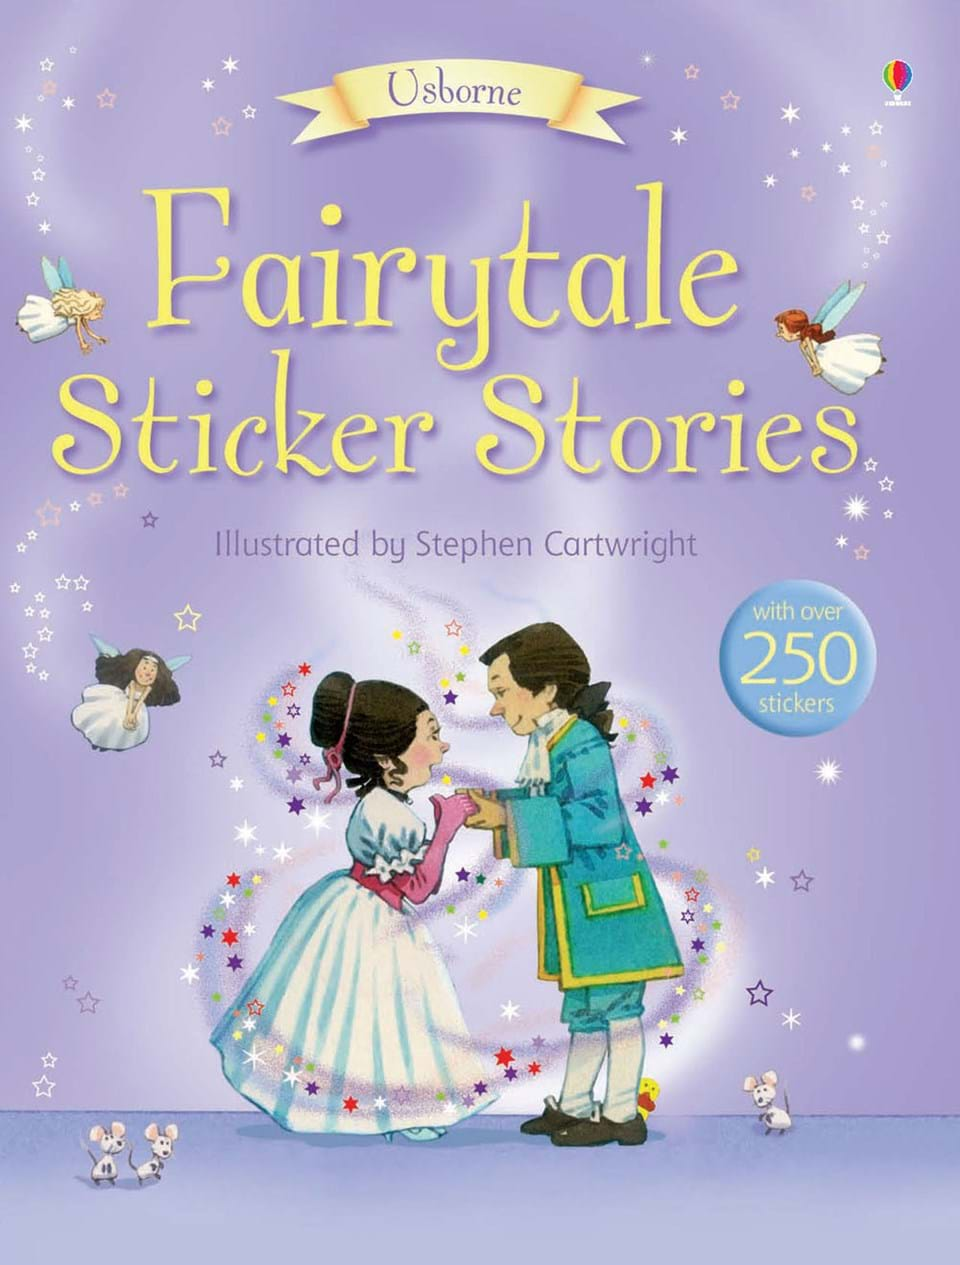 """Fairytale sticker stories"""" at Usborne Books at Home Organisers"""